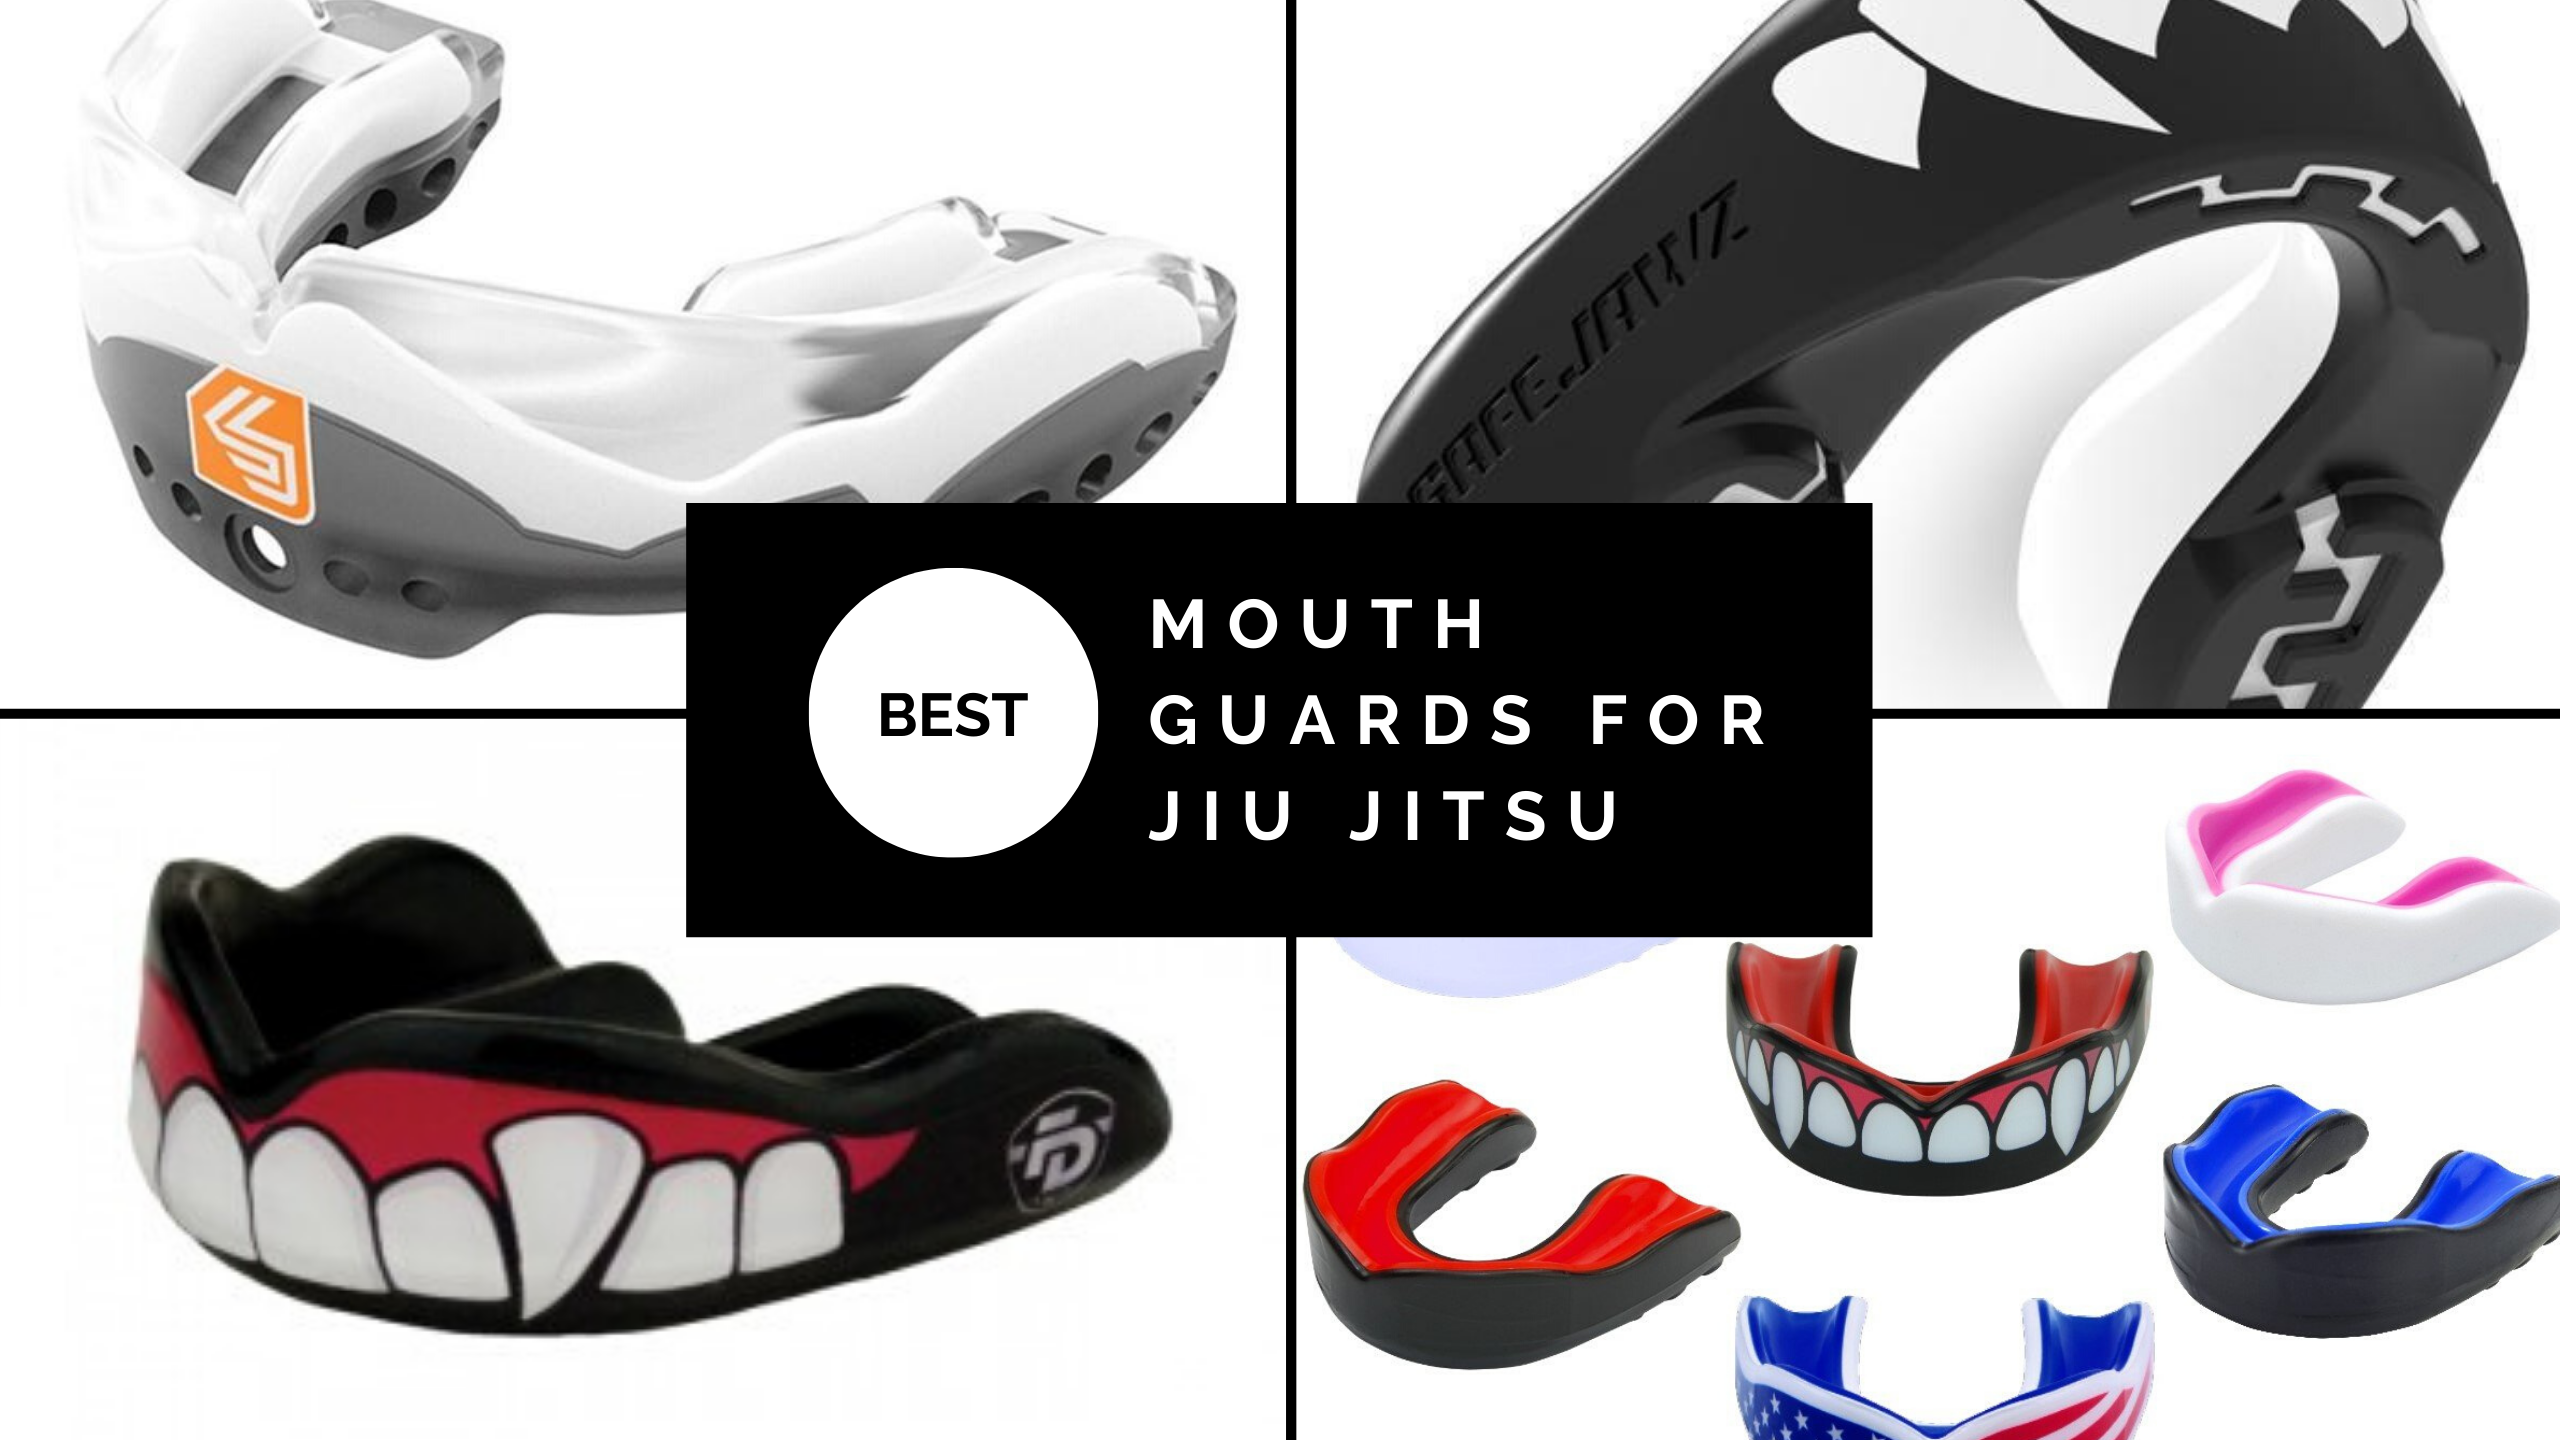 Mouth Guards for MMA